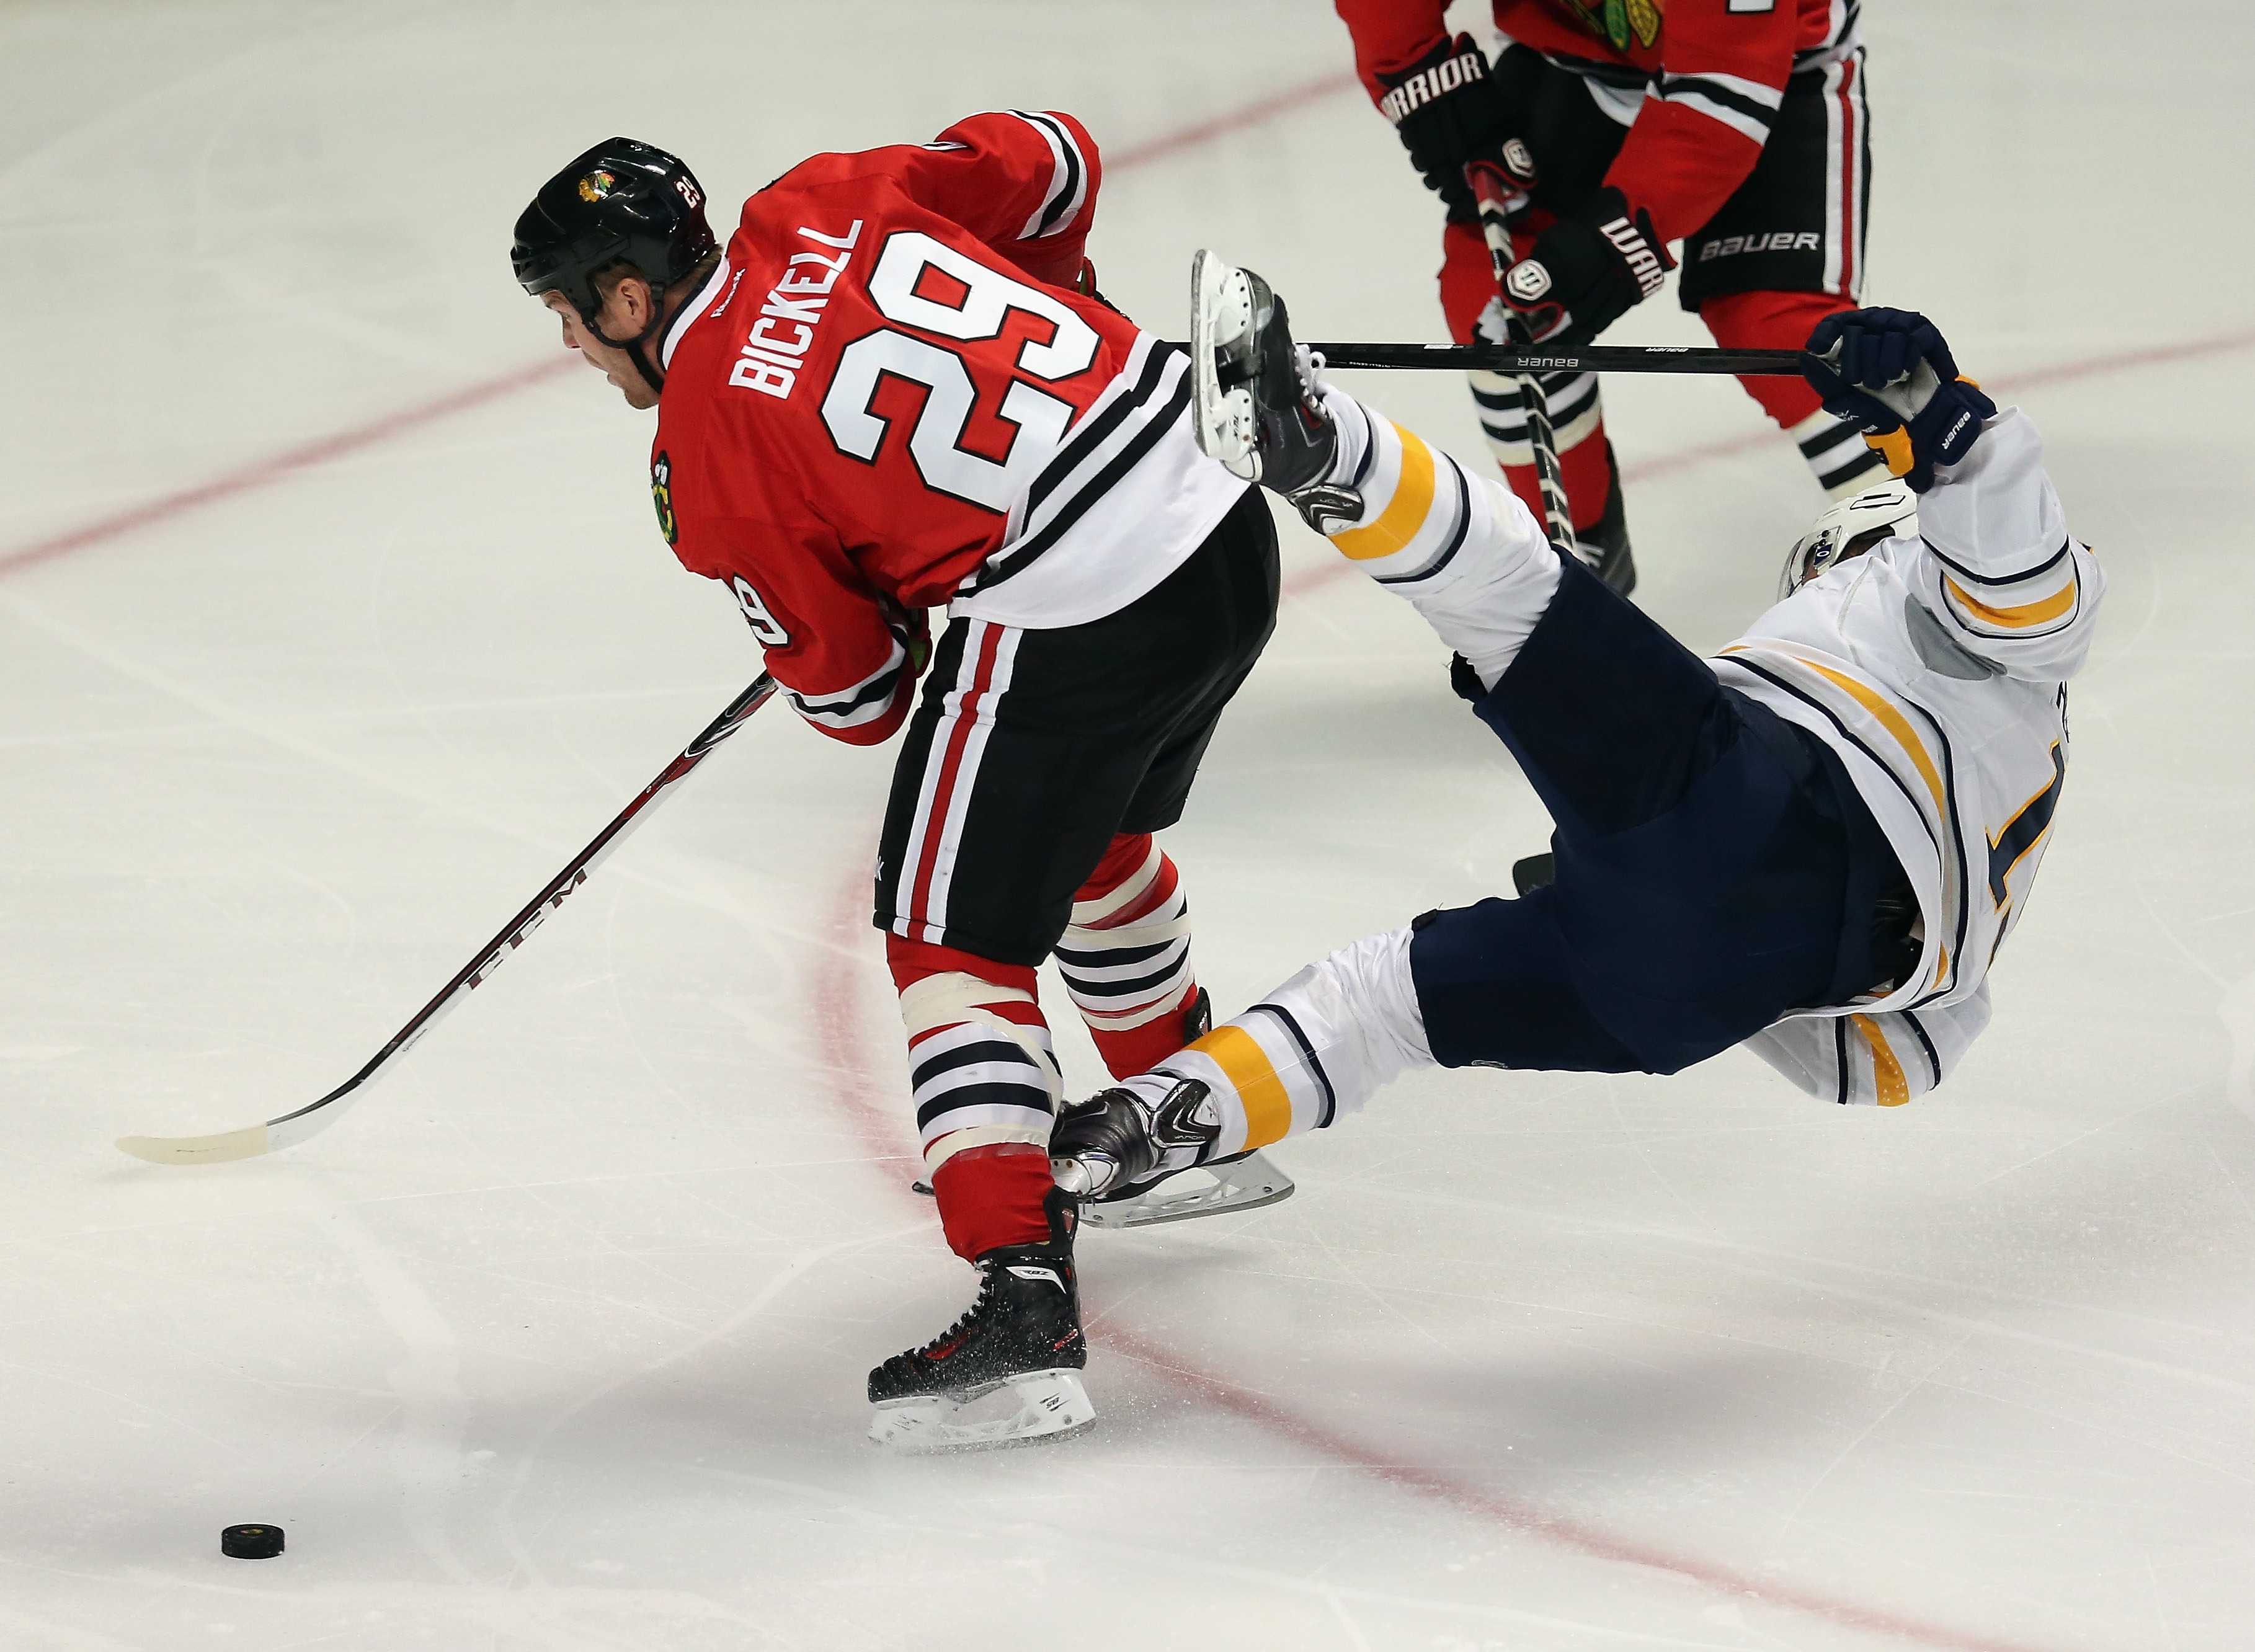 CHICAGO, IL – OCTOBER 12: Cody Hodgson #19 of the Buffalo Sabres goes flying in the air after colliding with Bryan Bickell #29 of the Chicago Blackhawks at the United Center on October 12, 2013 in Chicago, Illinois. (Photo by Jonathan Daniel/Getty Images)